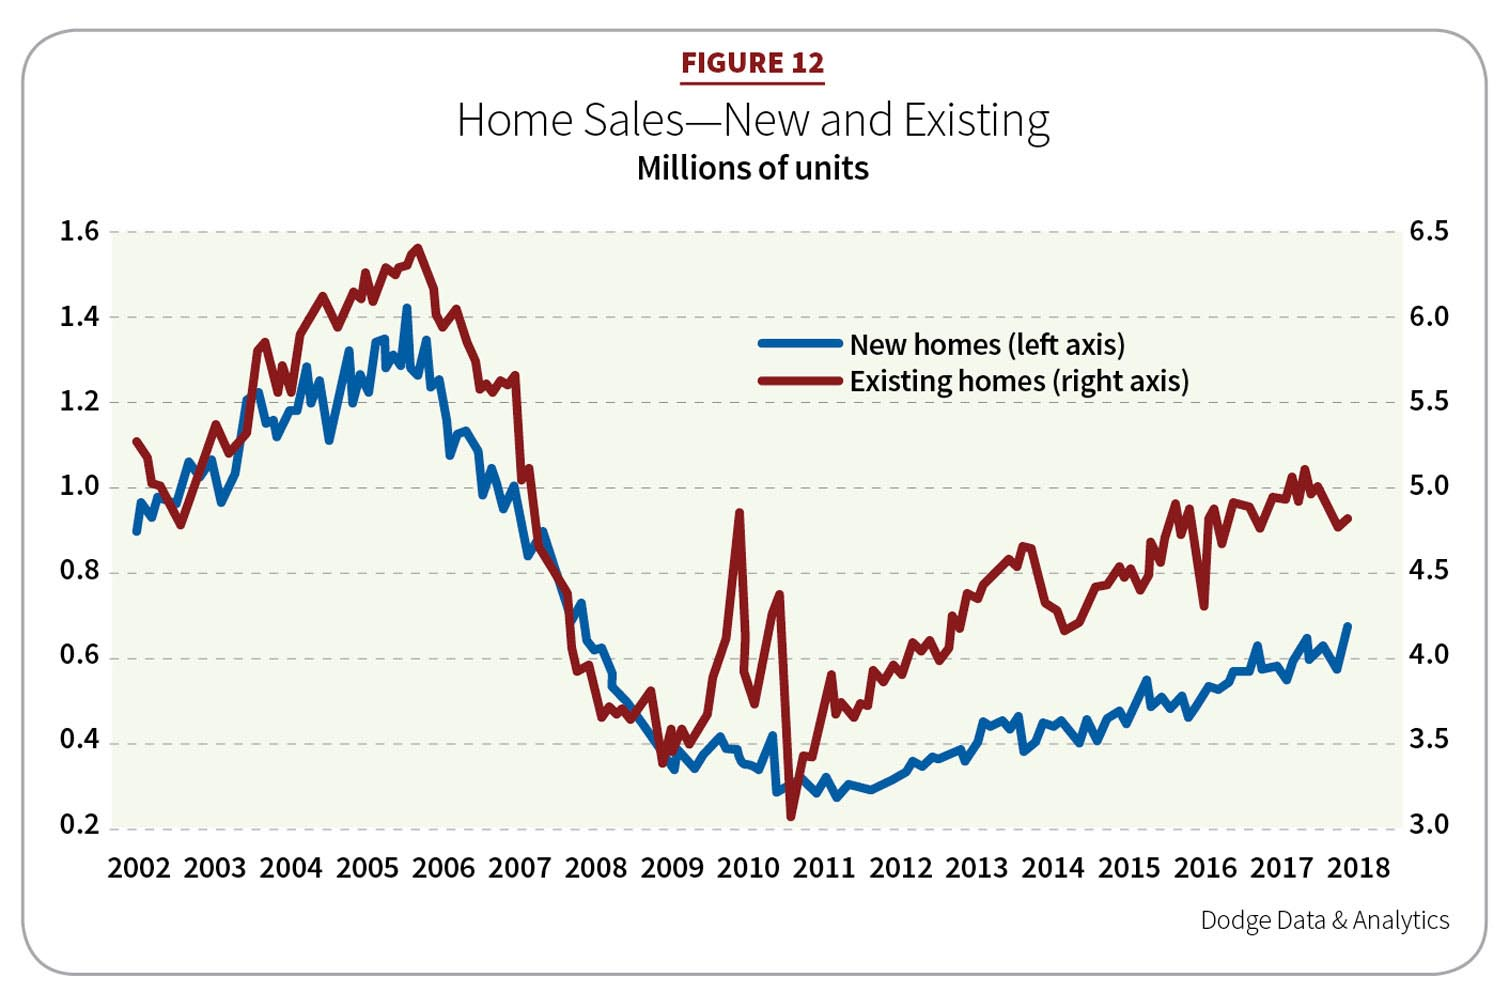 Figure 12: Home Sales—New and Existing